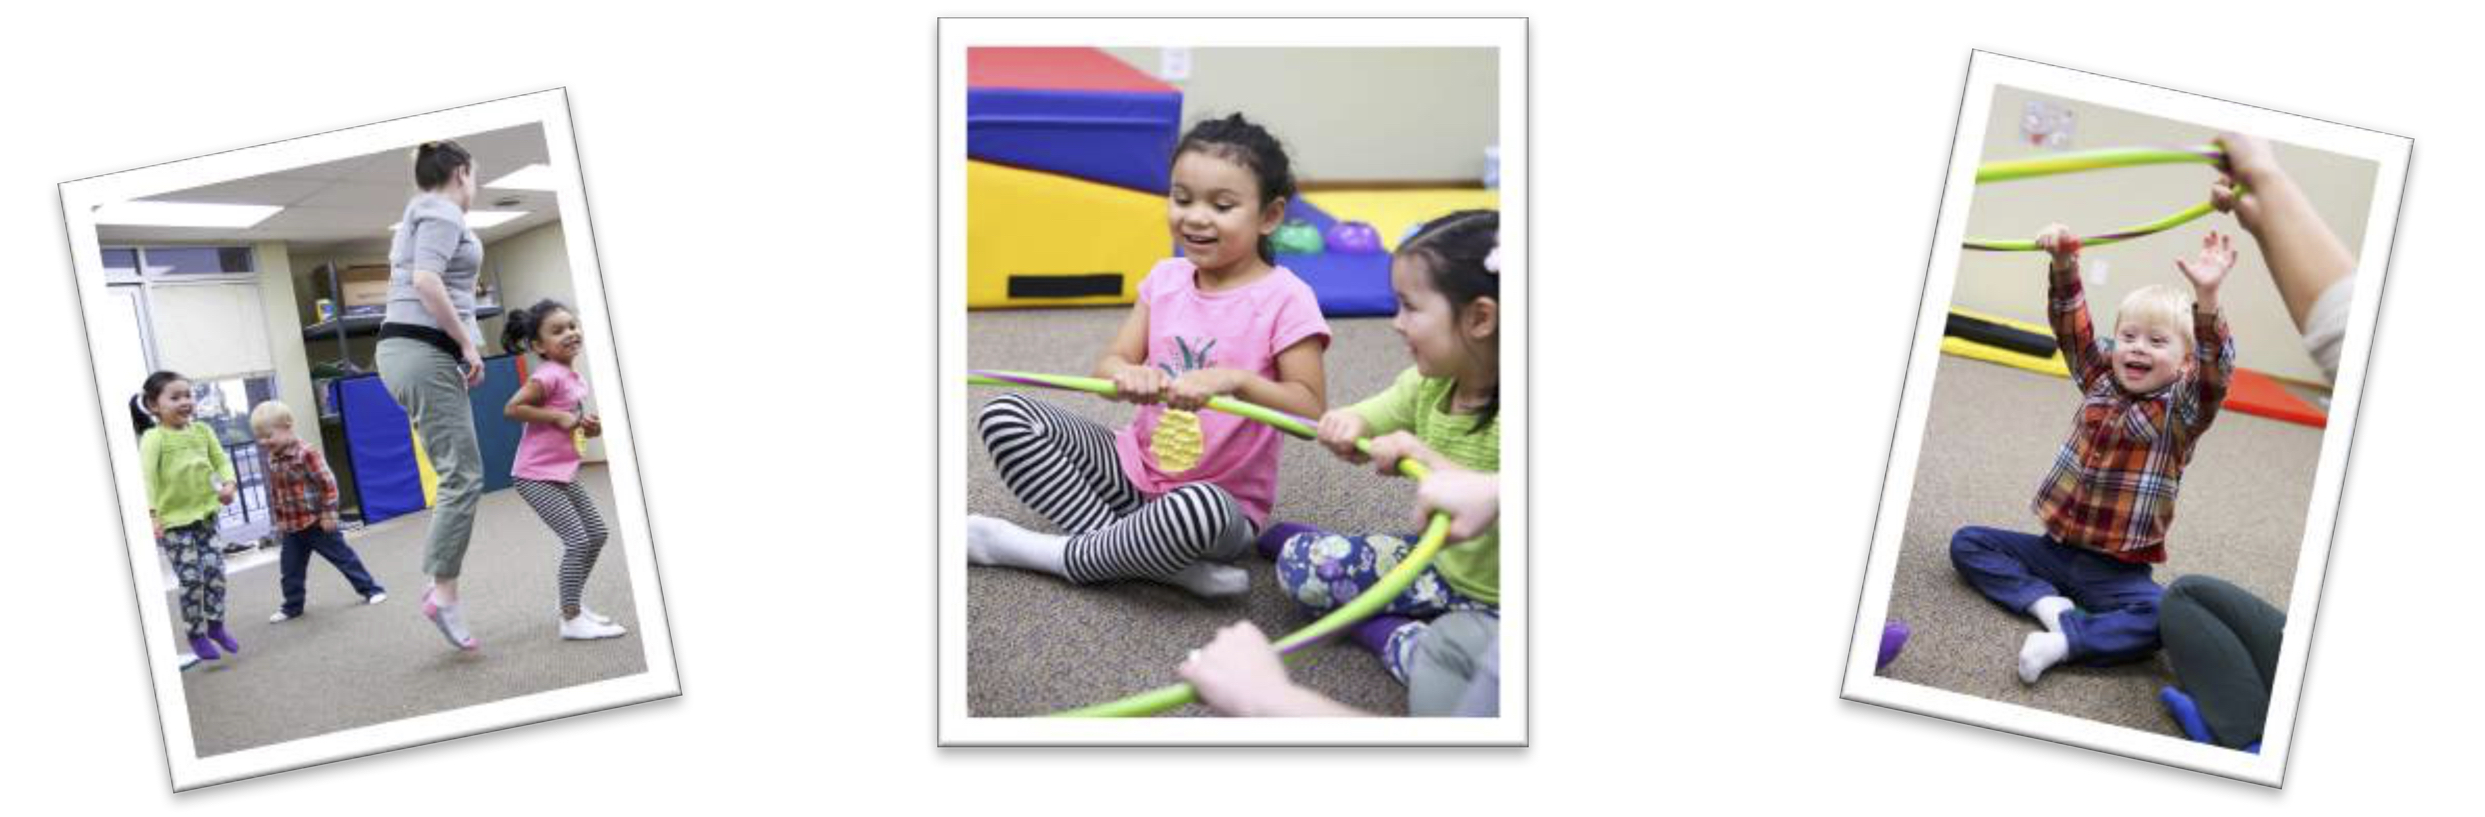 Sound In Motion - Therapeutic Social Skills Class for Young Children